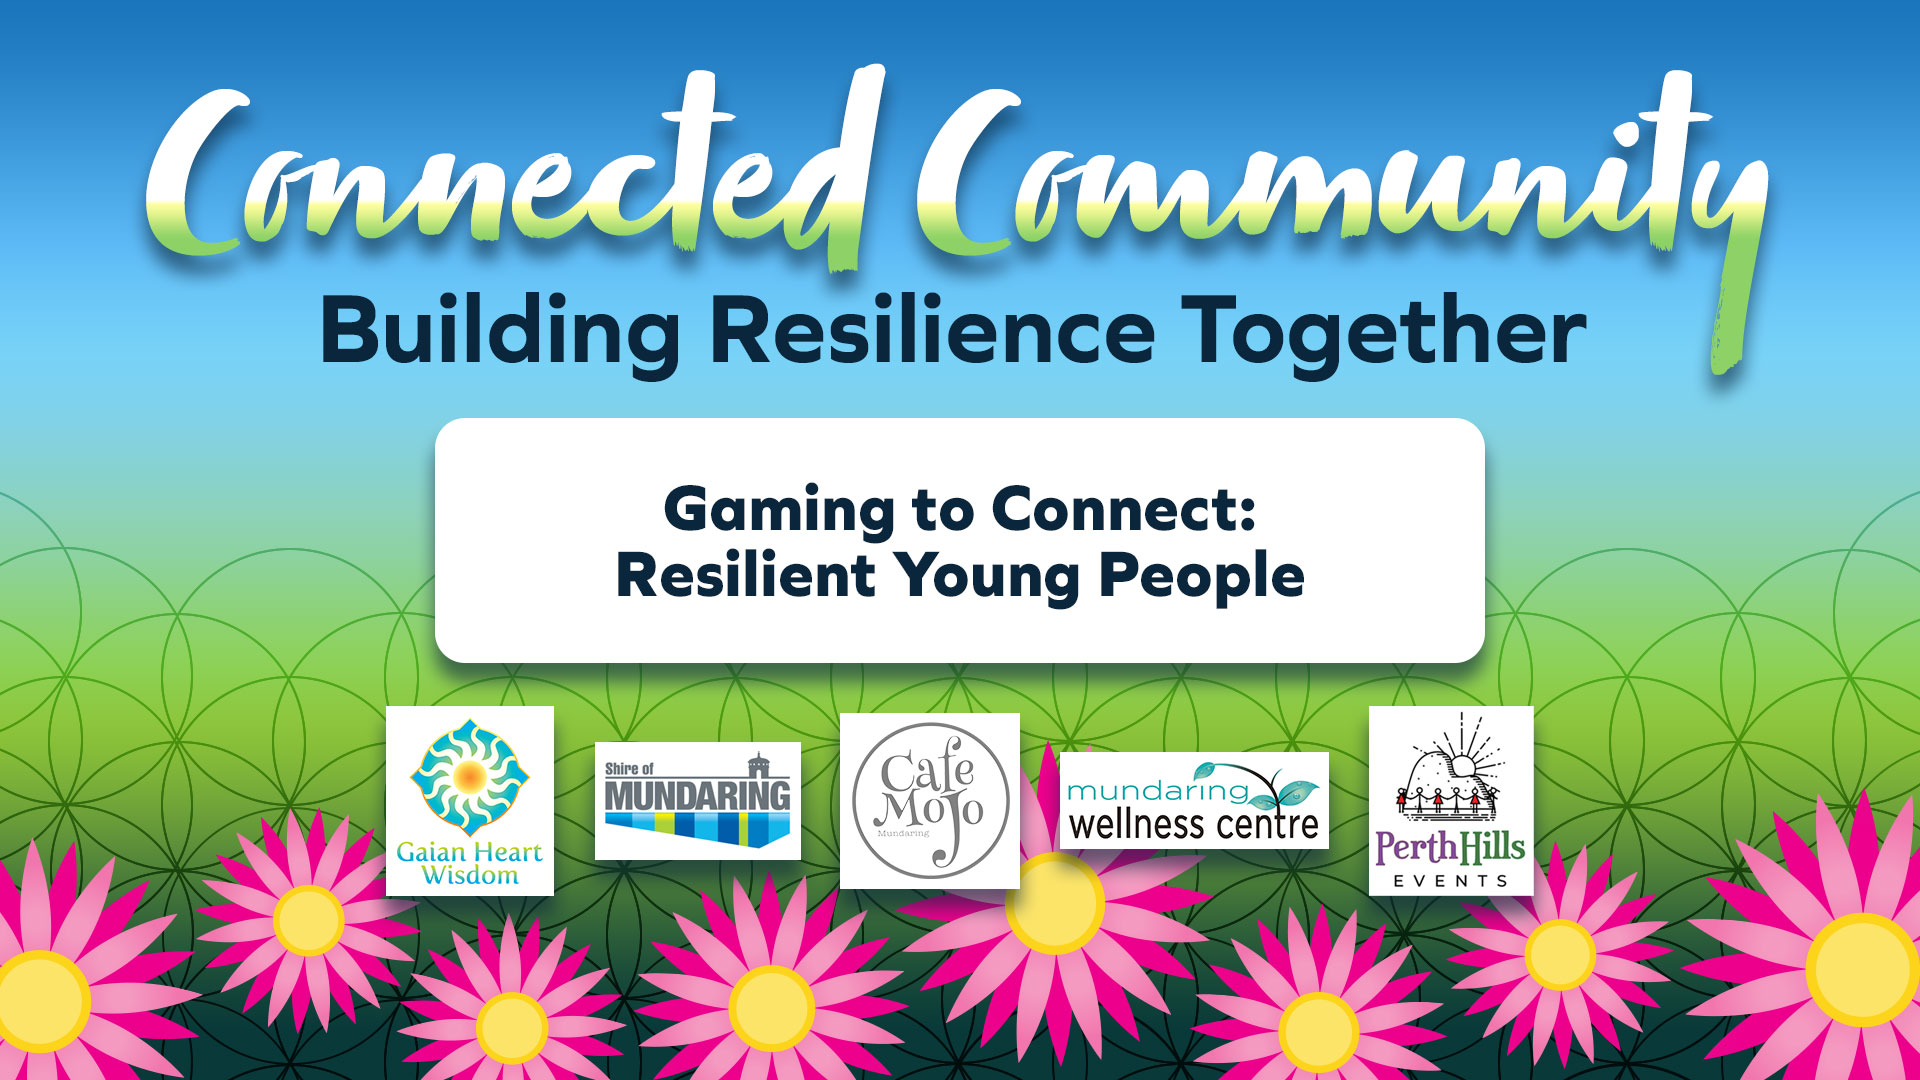 Gaming to Connect: Resilient Young People